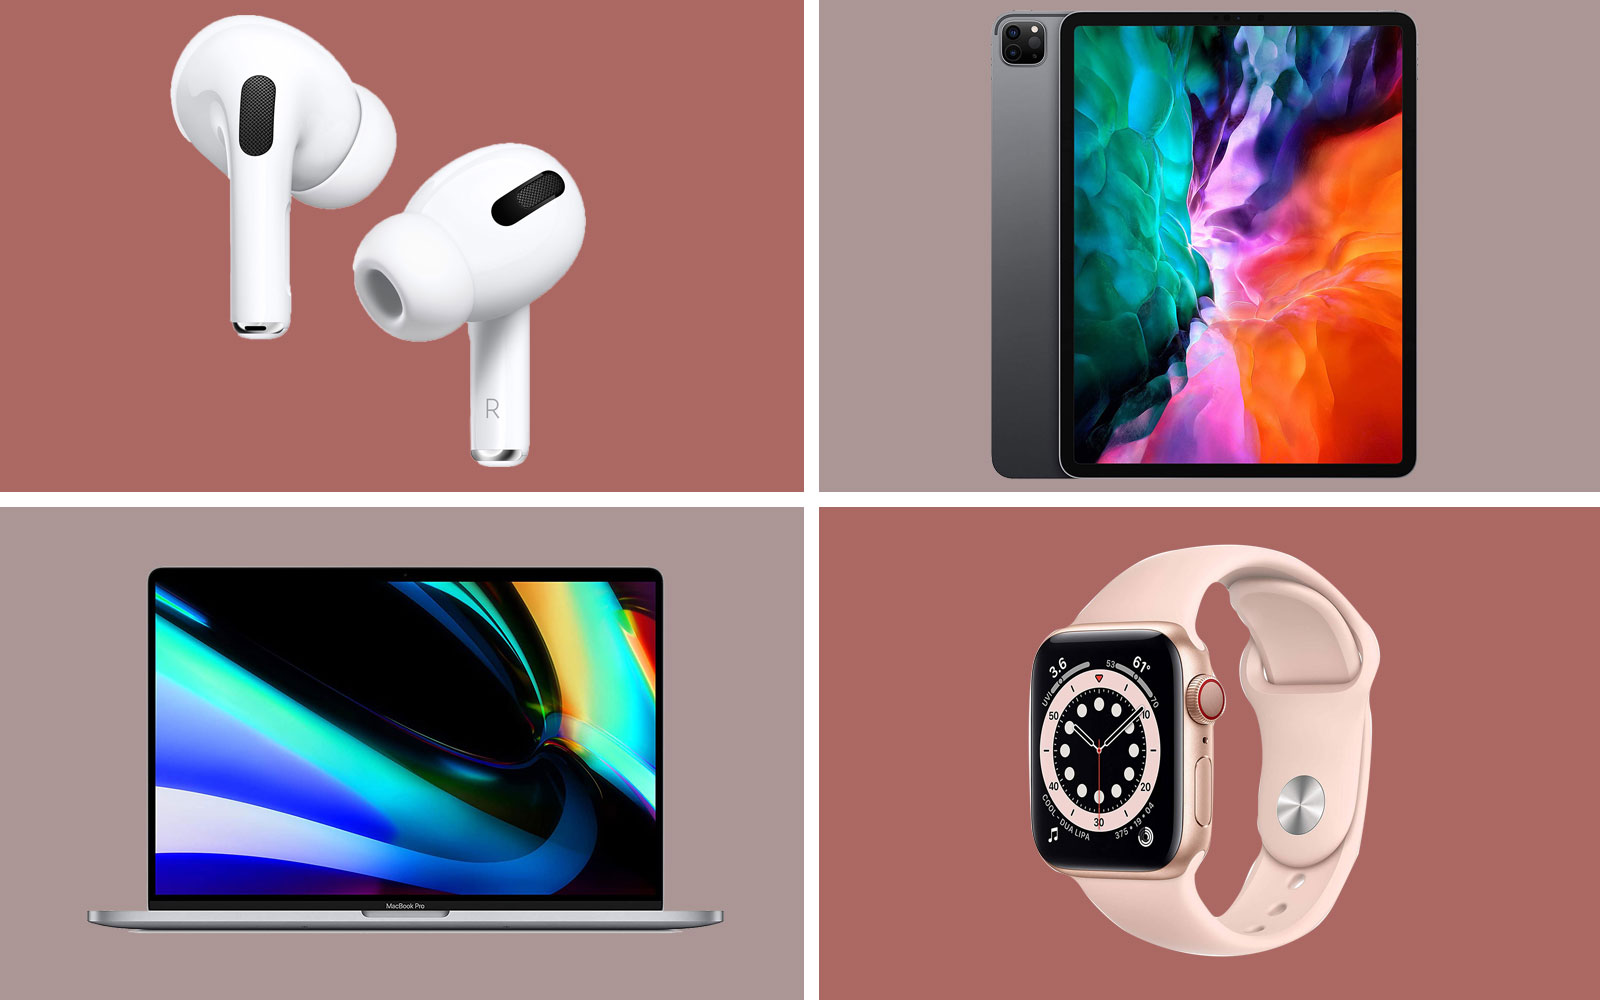 apple airpods, macbook pro, ipad, watch